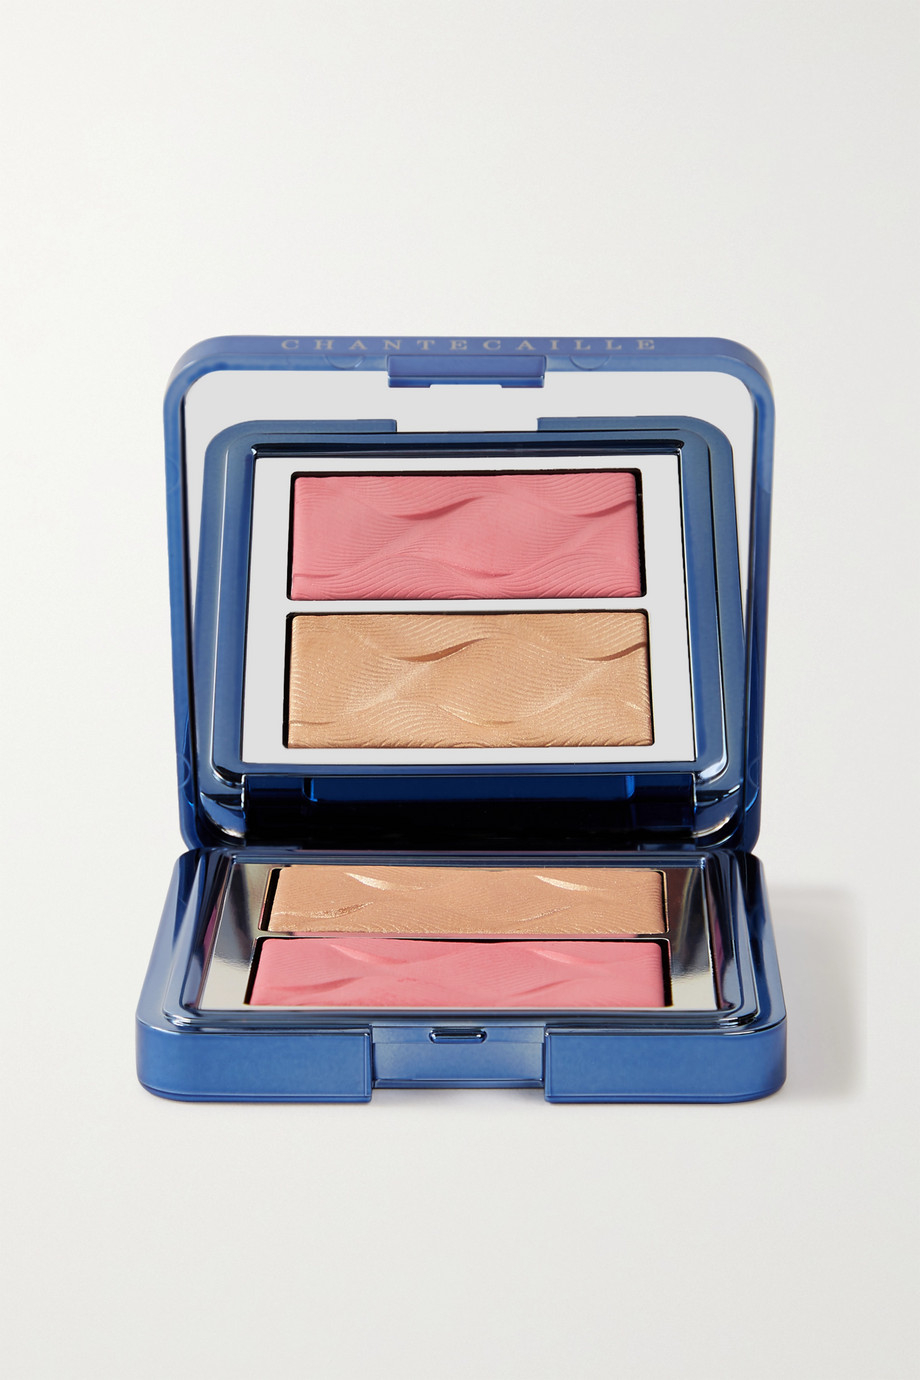 Chantecaille Radiance Chic Cheek and Highlighter Duo - Rose Whale Shark